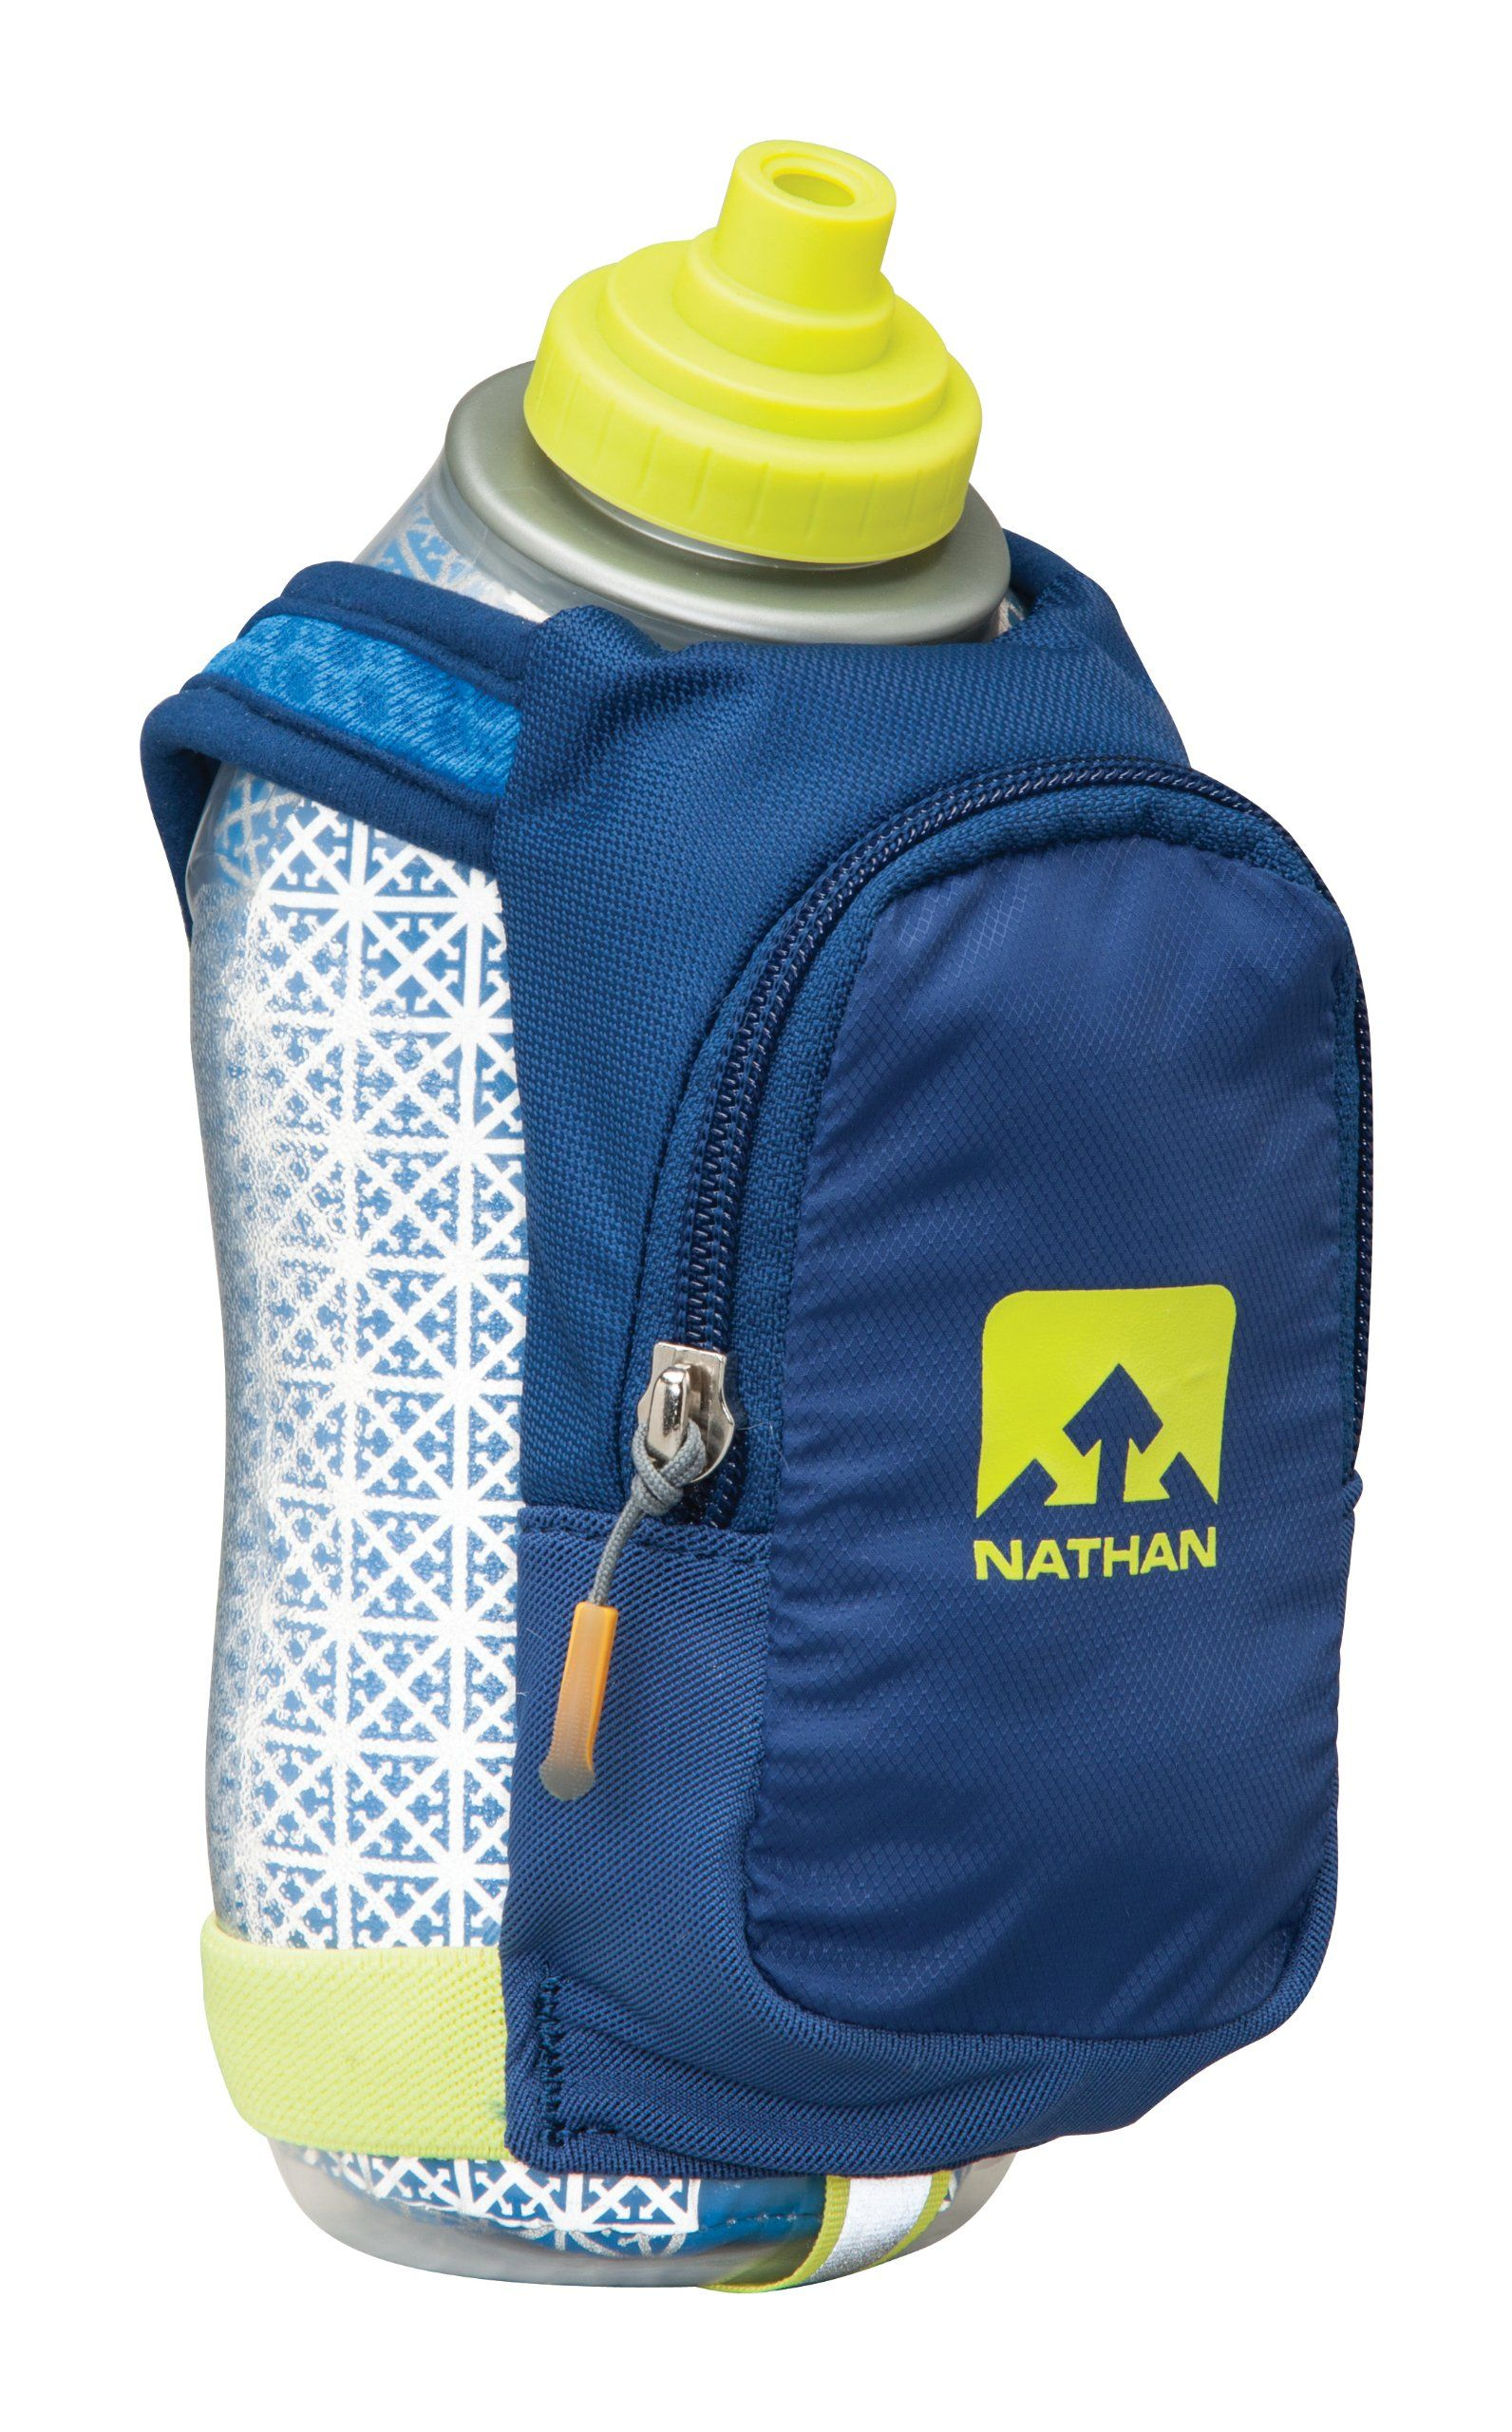 Amazon.com : Nathan SpeedDraw Plus Insulated Flask, Estate Blue, One Size : Sports & Outdoors